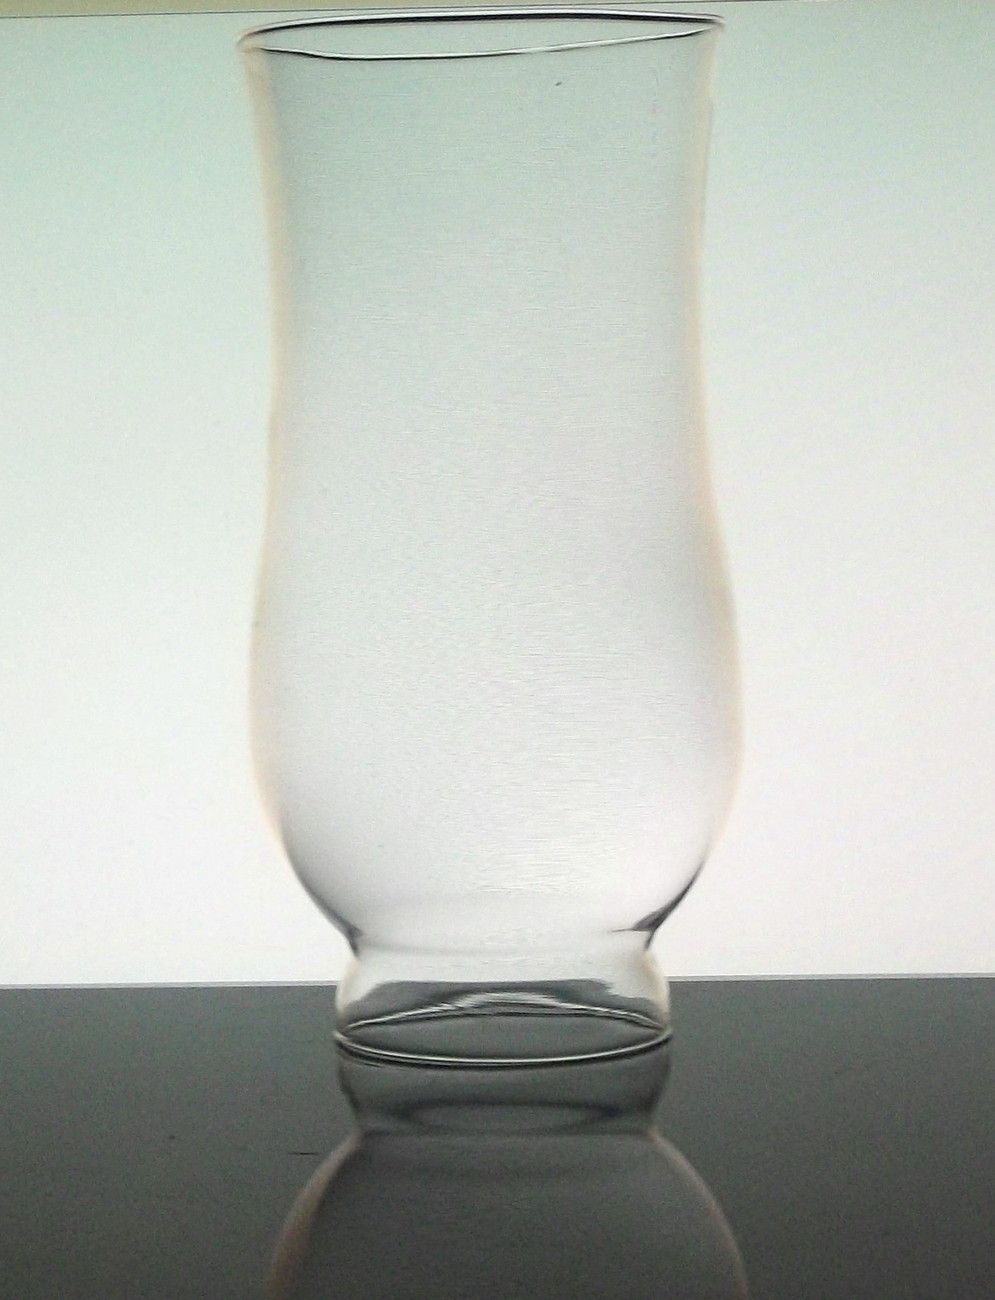 Glass Hurricane Shade 2 1/8 inch fitter x 7 7/8 x 3.75